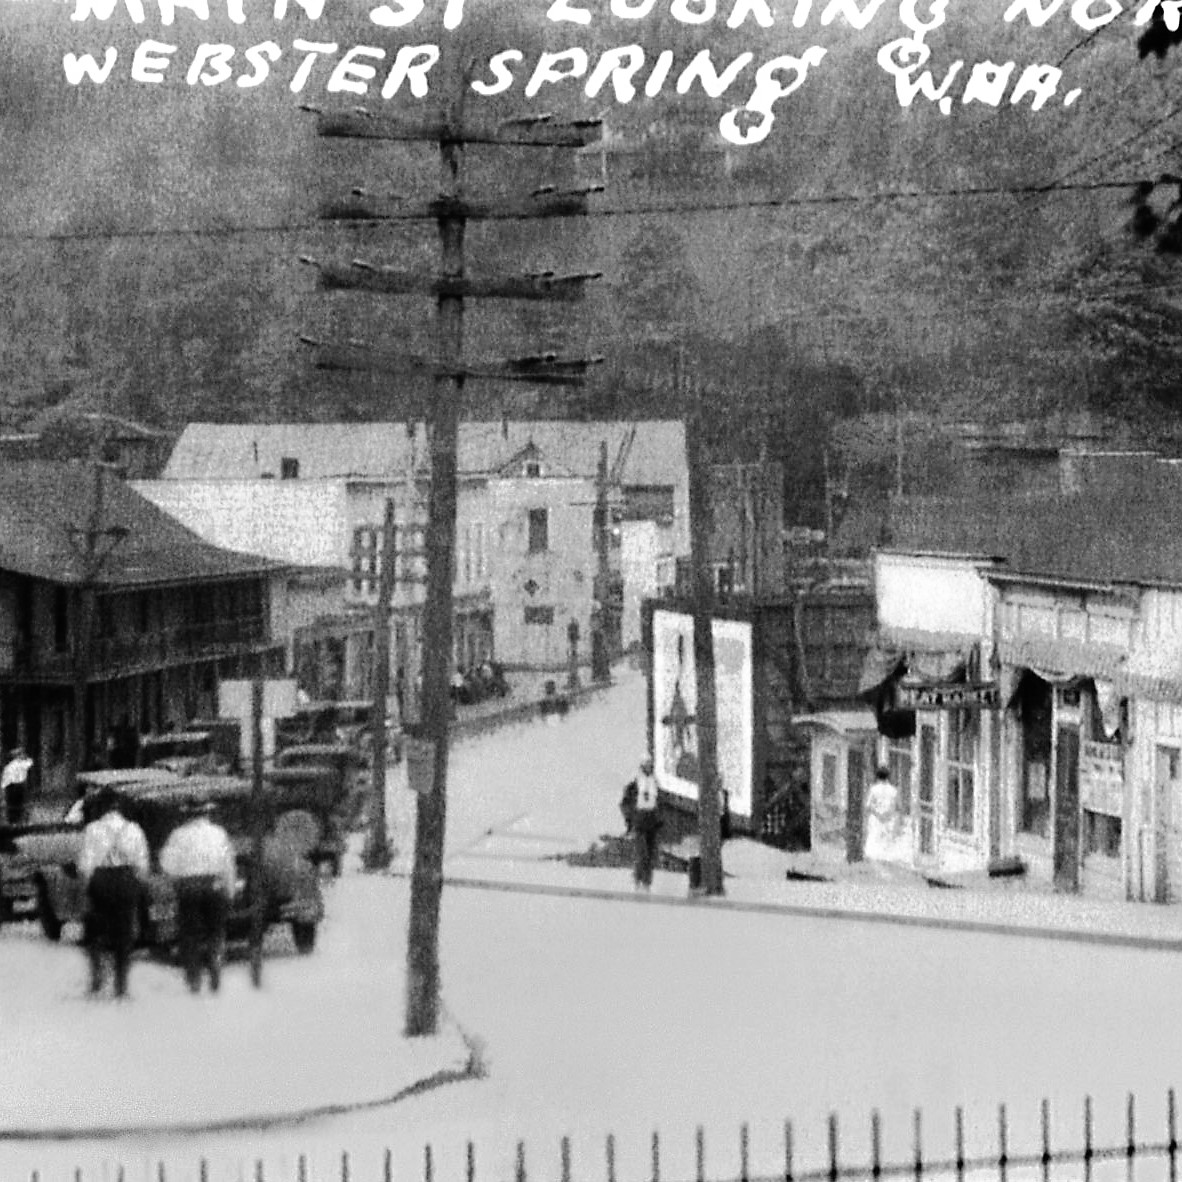 historic Webster Springs